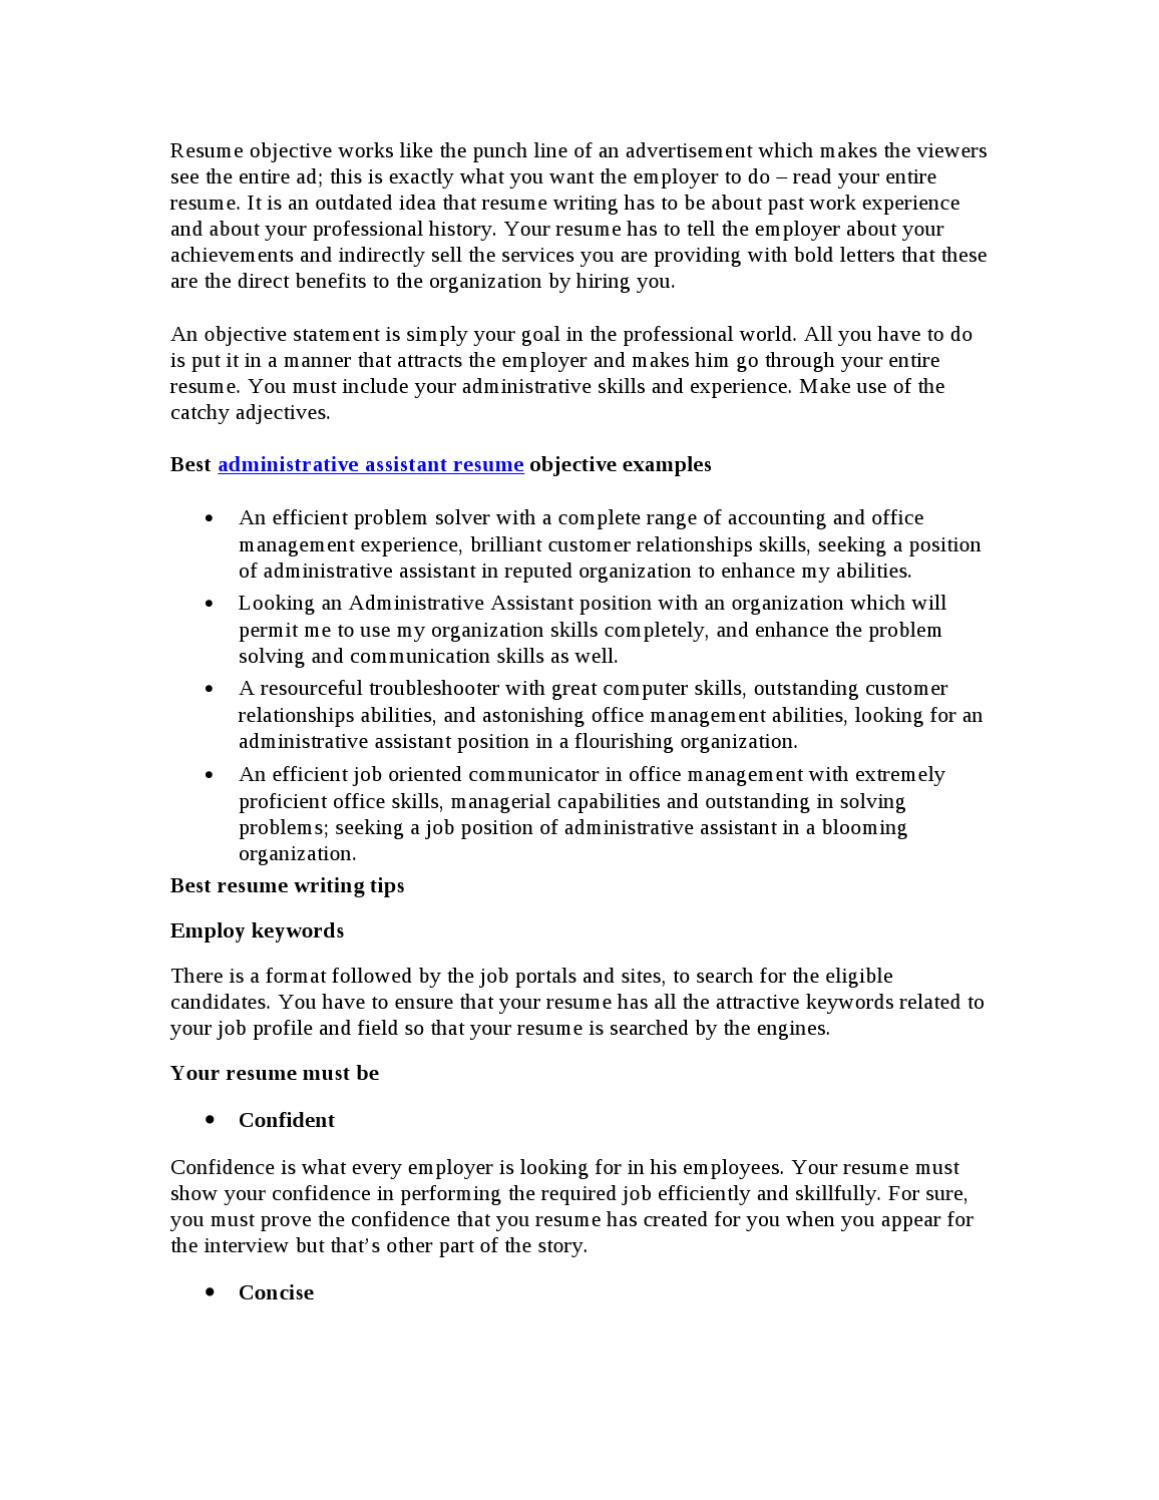 best administrative assistant resume objective by chris klinton issuu for an customer Resume Resume Objective For An Administrative Assistant